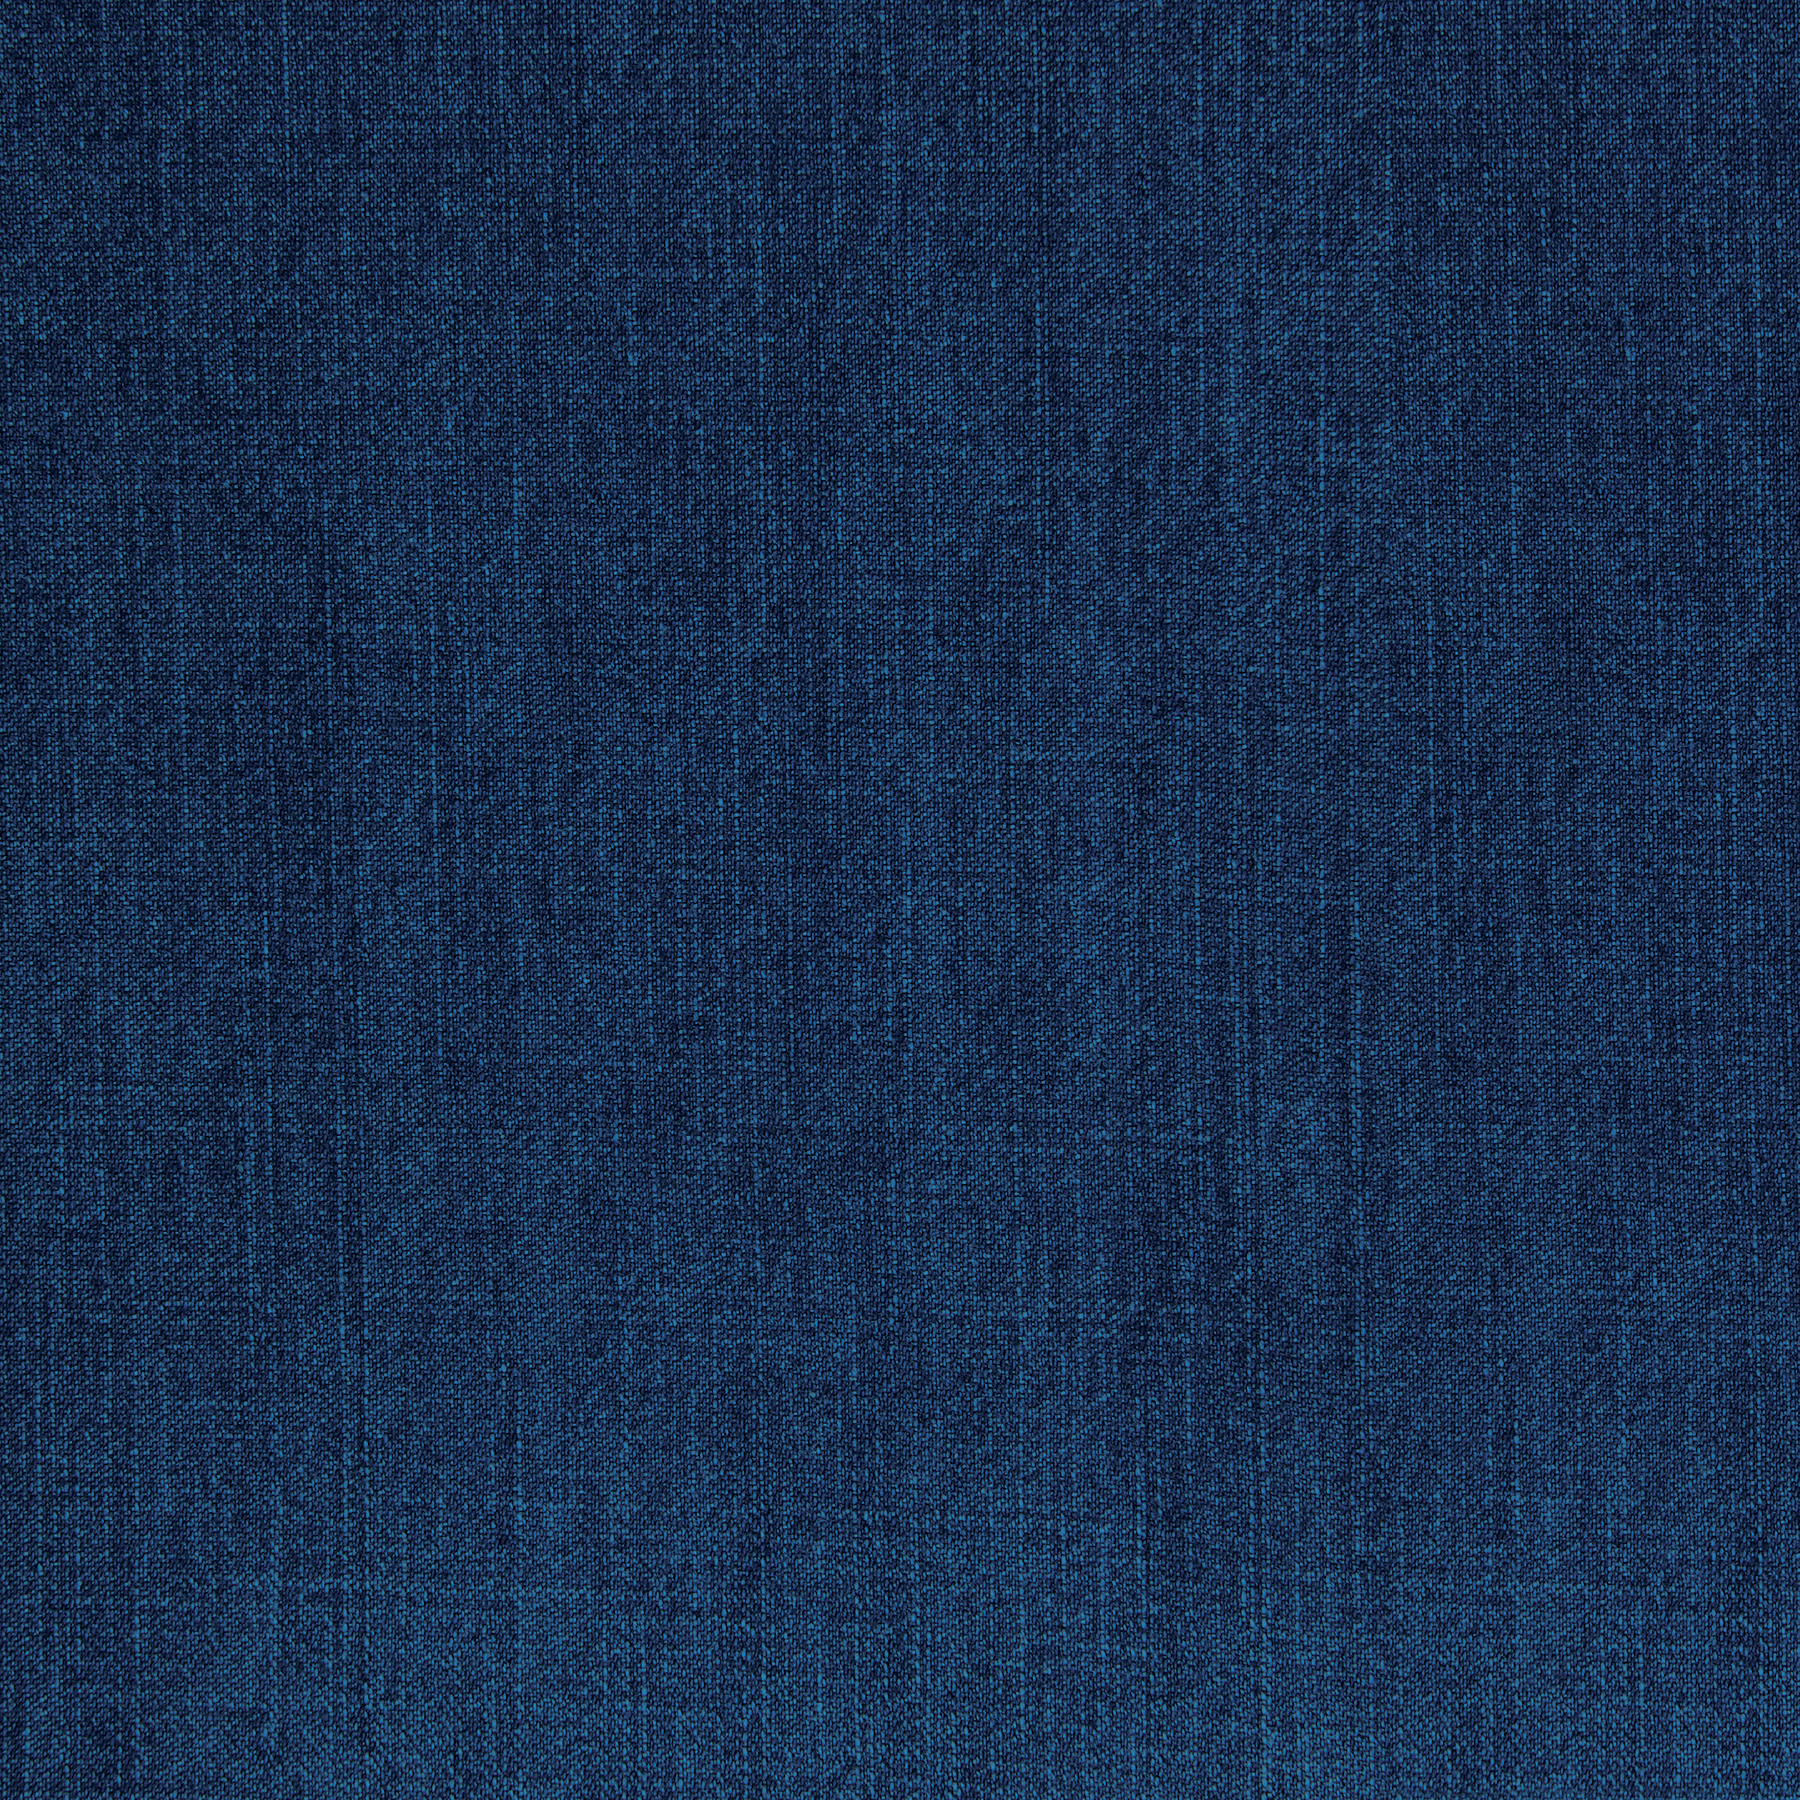 Shop For The Blue Denim Paper By Recollections 174 At Michaels